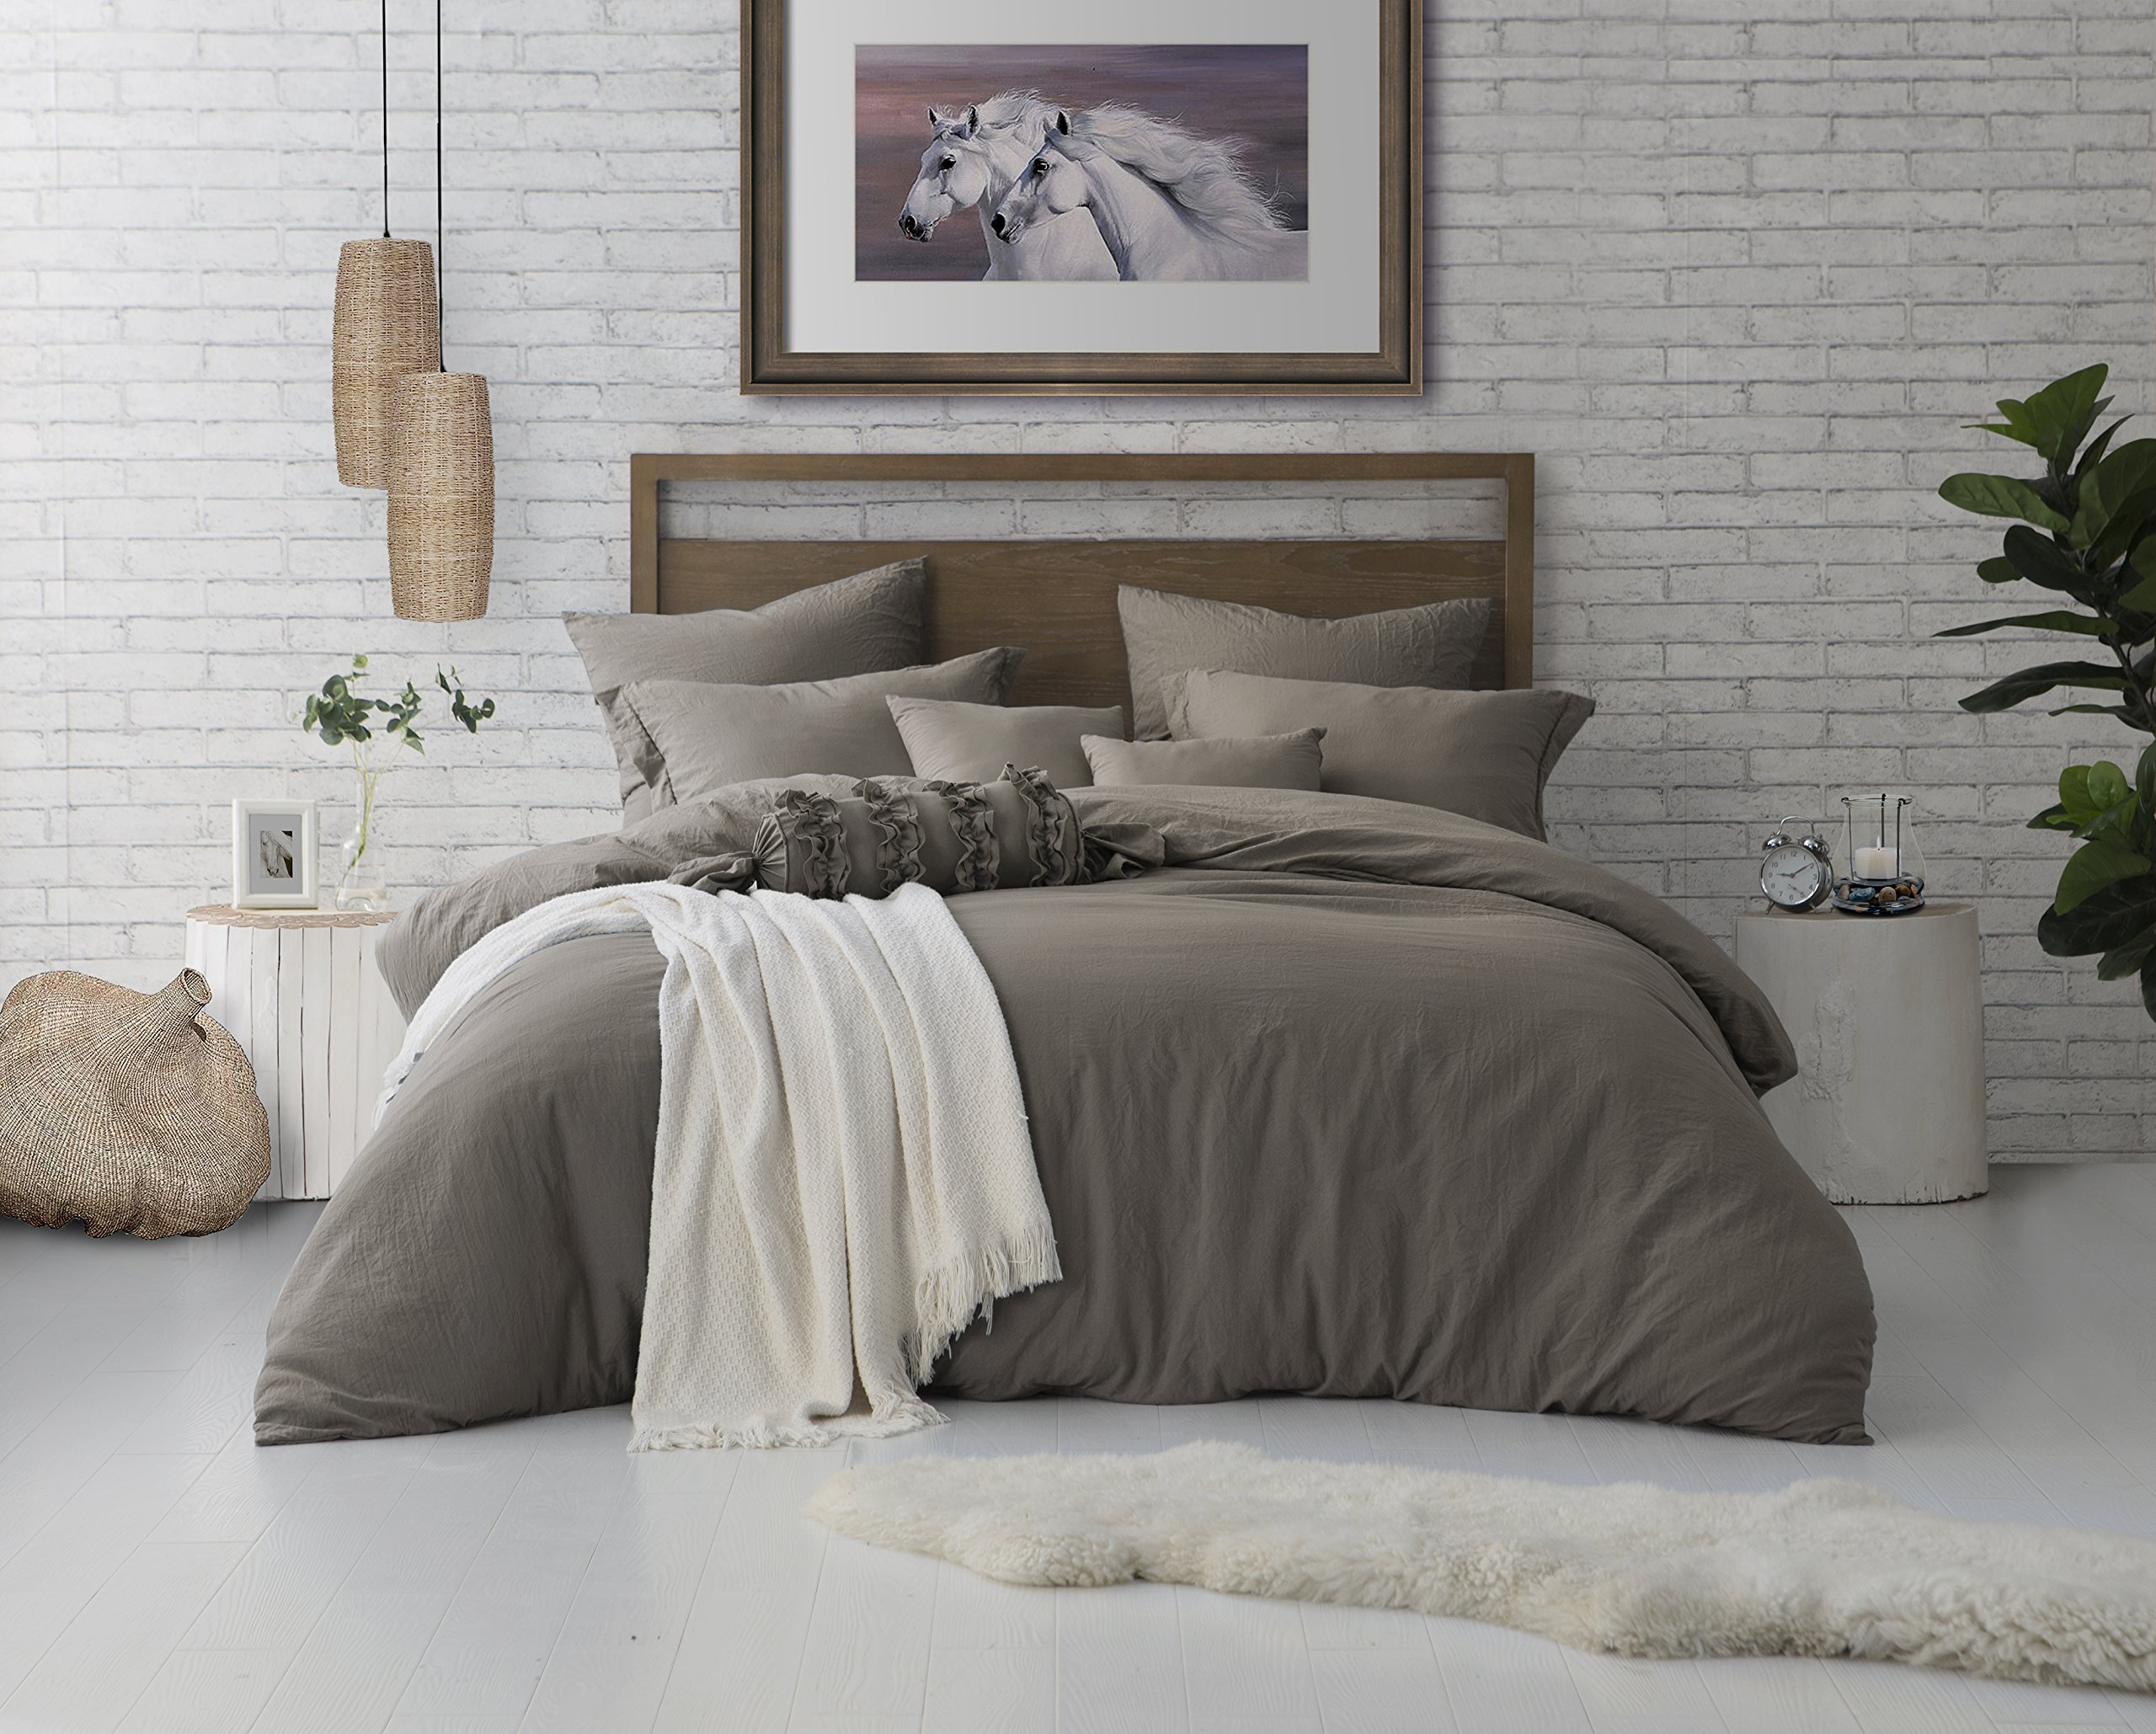 Swift Home Microfiber Washed Crinkle Duvet Cover & Sham (1 Duvet Cover with Zipper Closure & 2 Pillow Shams), Premium Hotel Quality Bed Set, Ultra-Soft & Hypoallergenic – King/Cal King, Driftwood